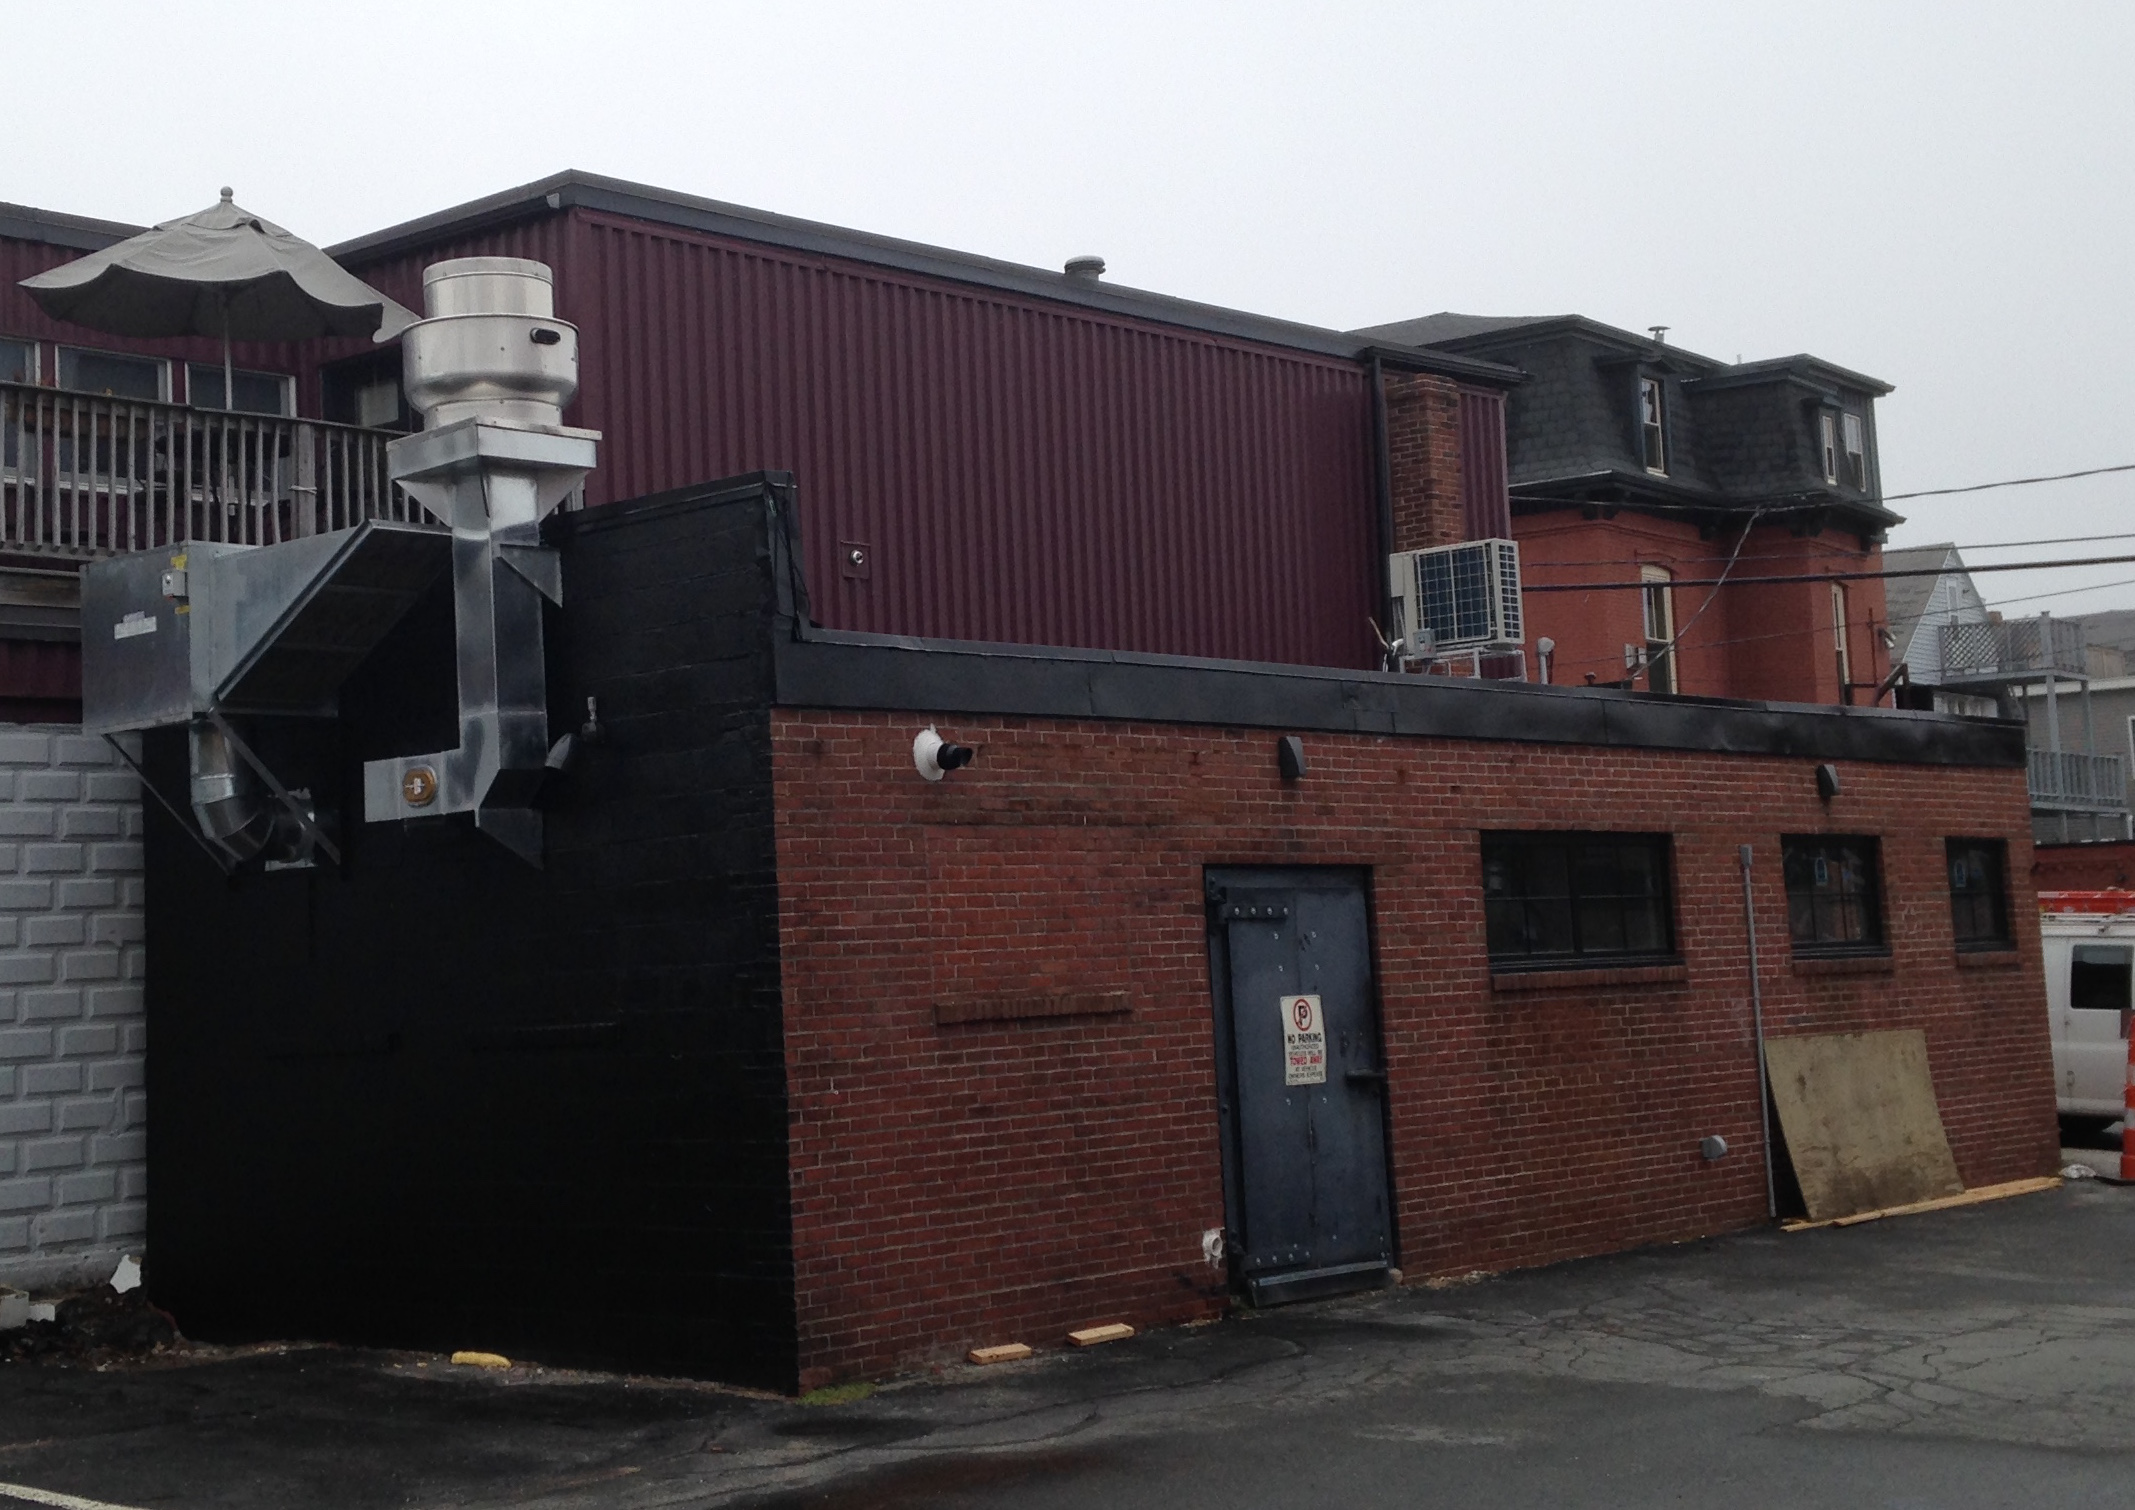 The back of Tomaso's Canteen in Portland, as seen from Franklin Street.